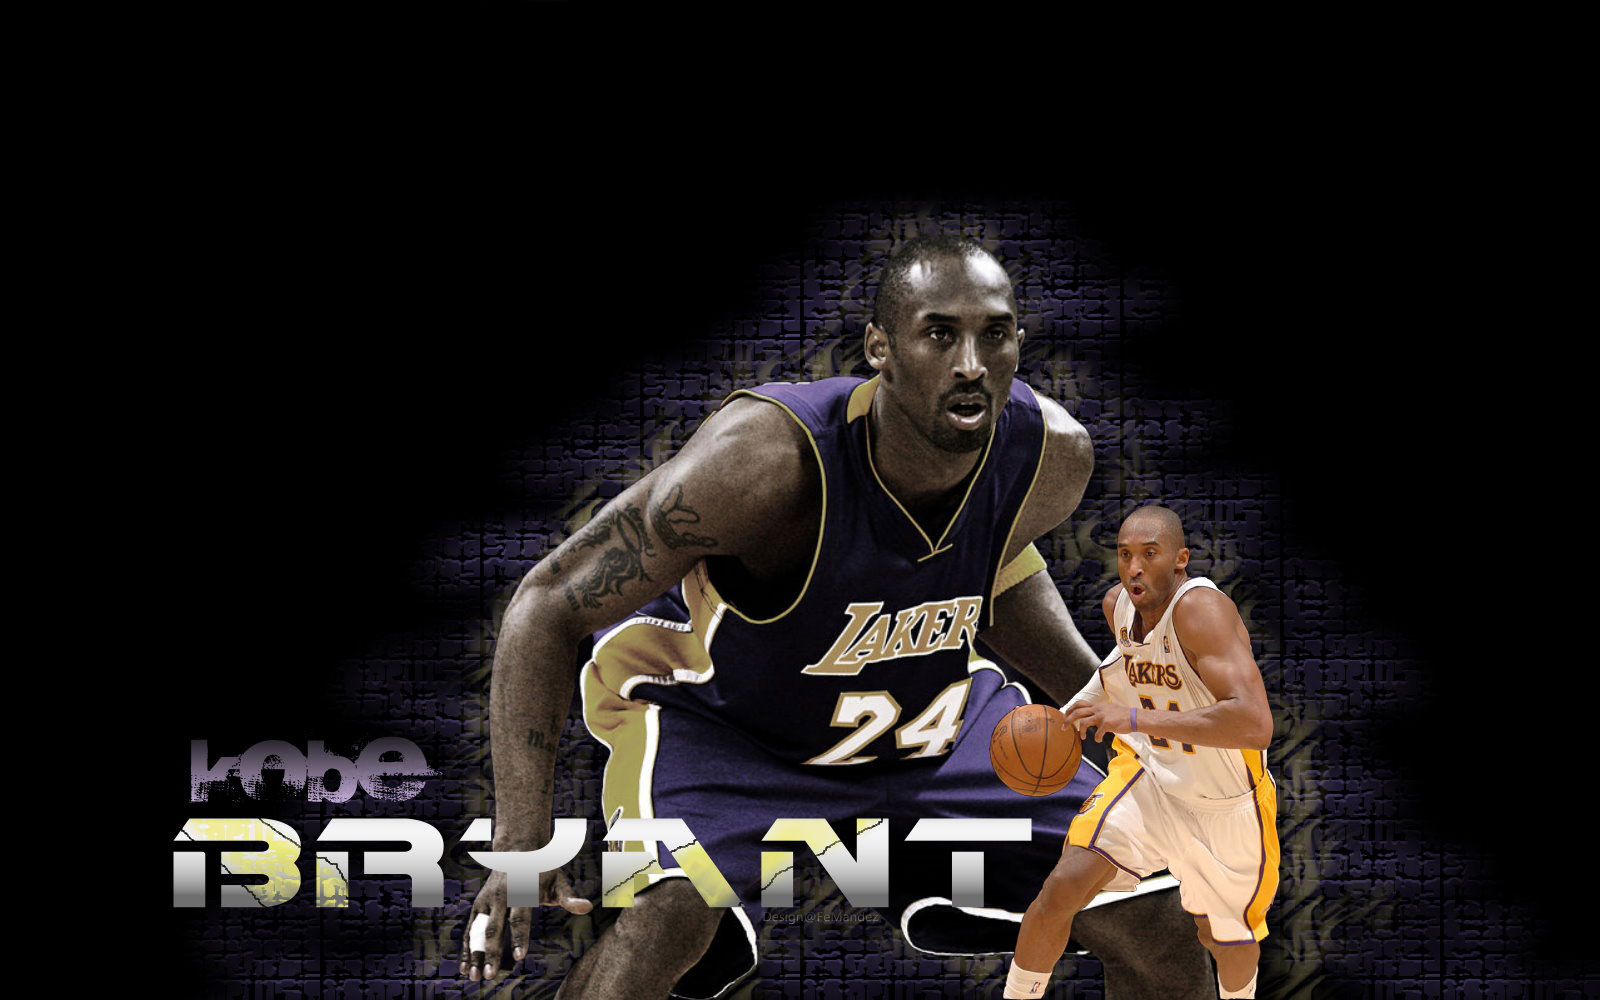 Kobe bryant basketball wallpapers pinoy99 news daily updates kobe bryant basketball wallpapers pinoy99 news daily updates philippines newsoverseas filipino workers sports news voltagebd Gallery